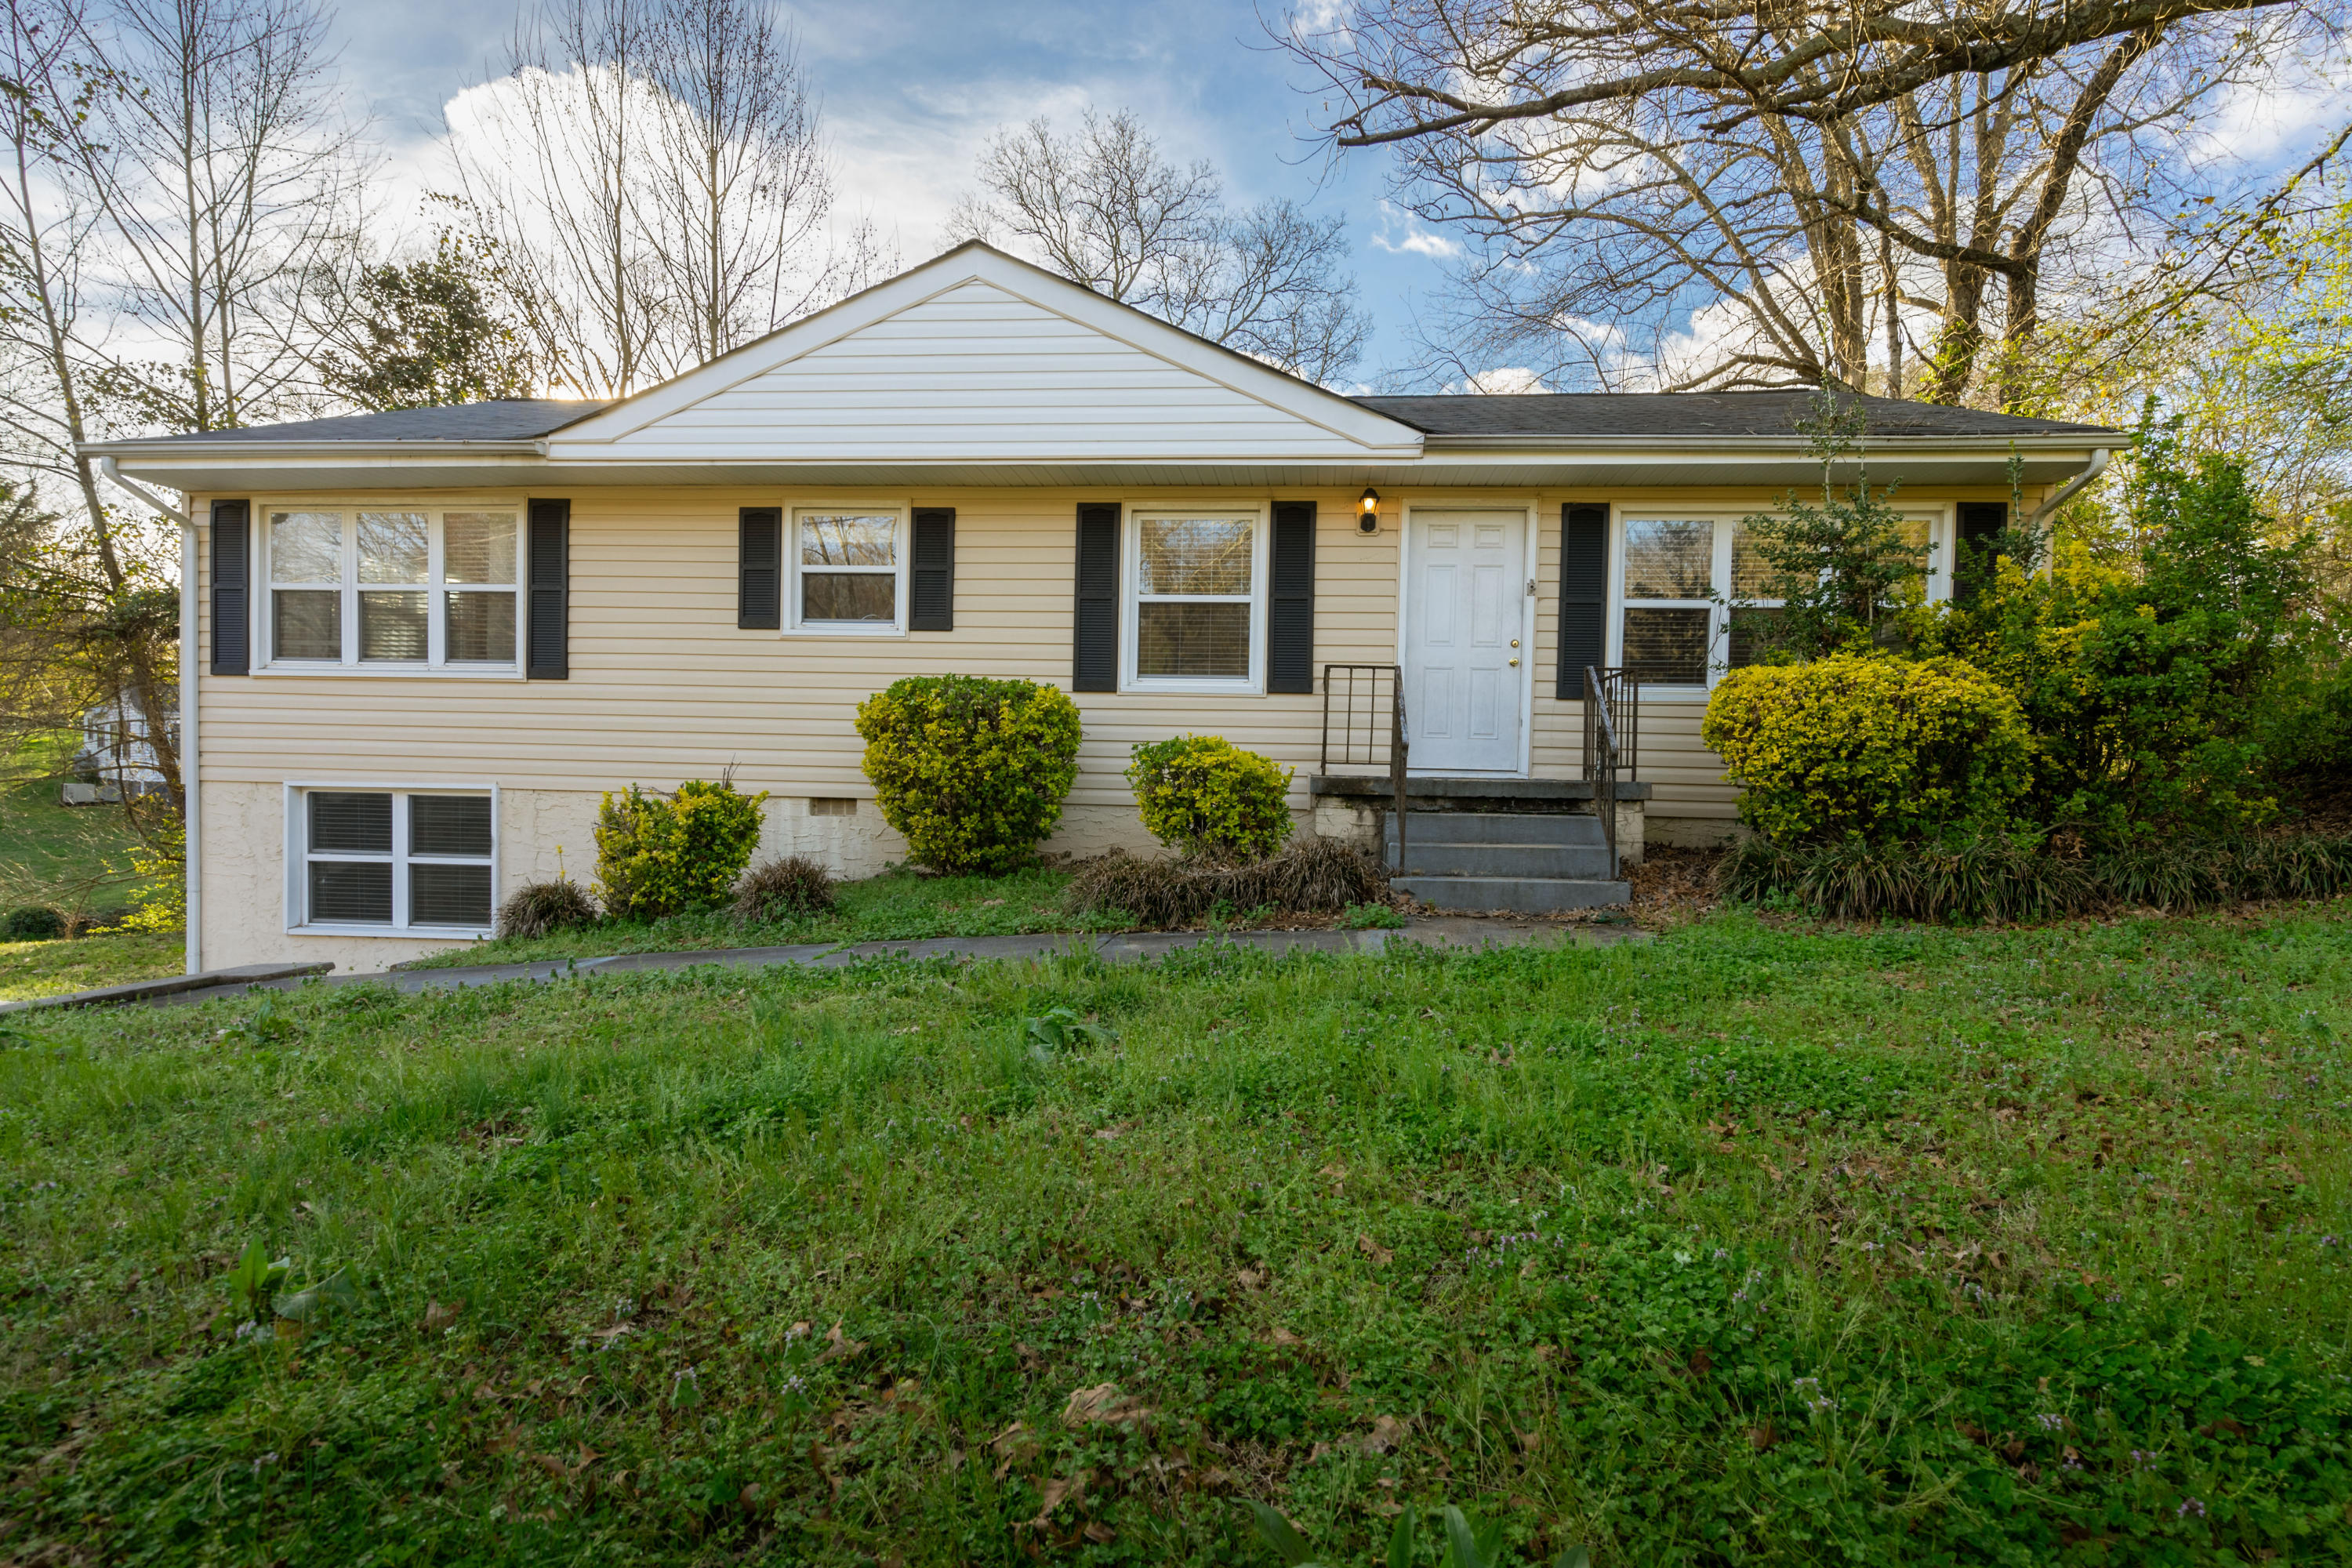 3759 Occonechee Tr, Chattanooga, TN 37415